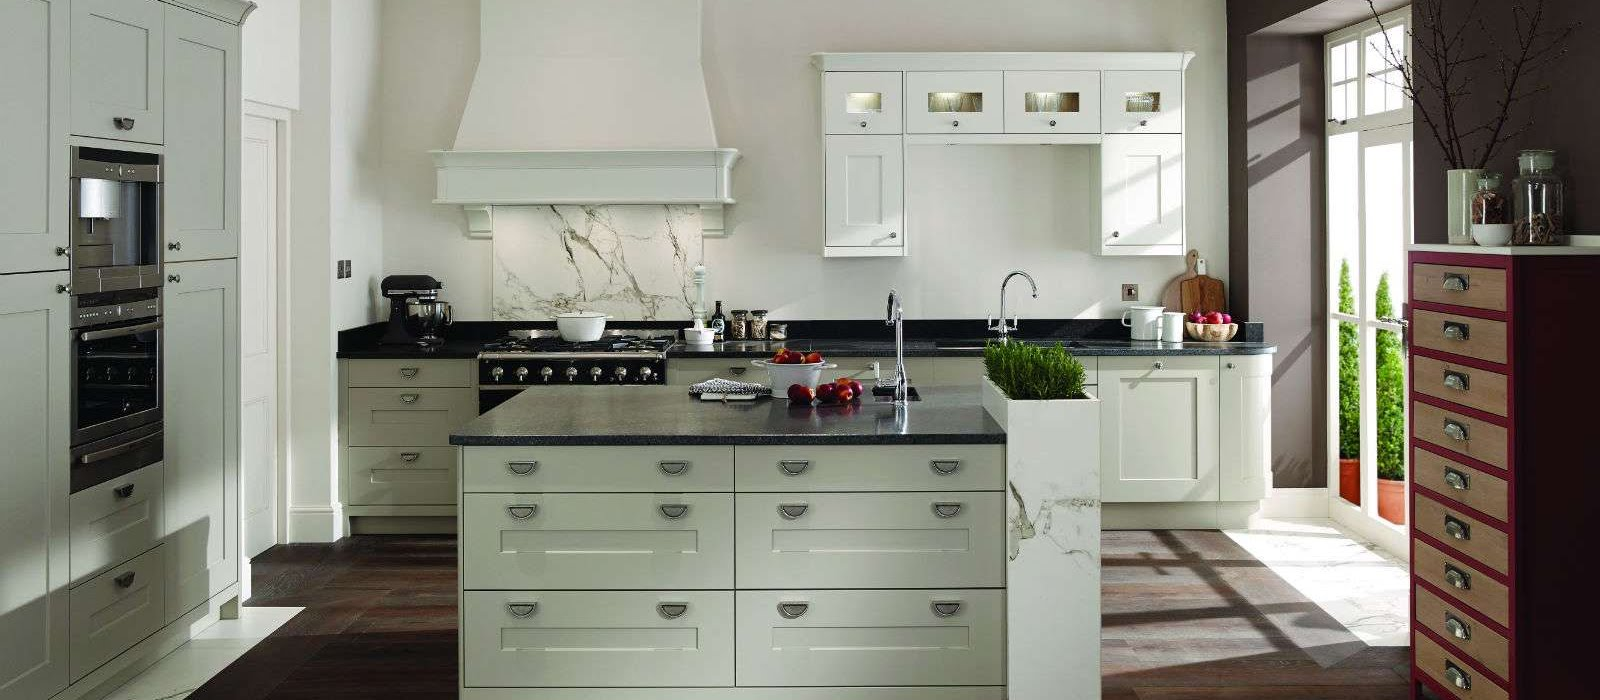 Contemporary Kitchens Designs In Welford | Heart Kitchens